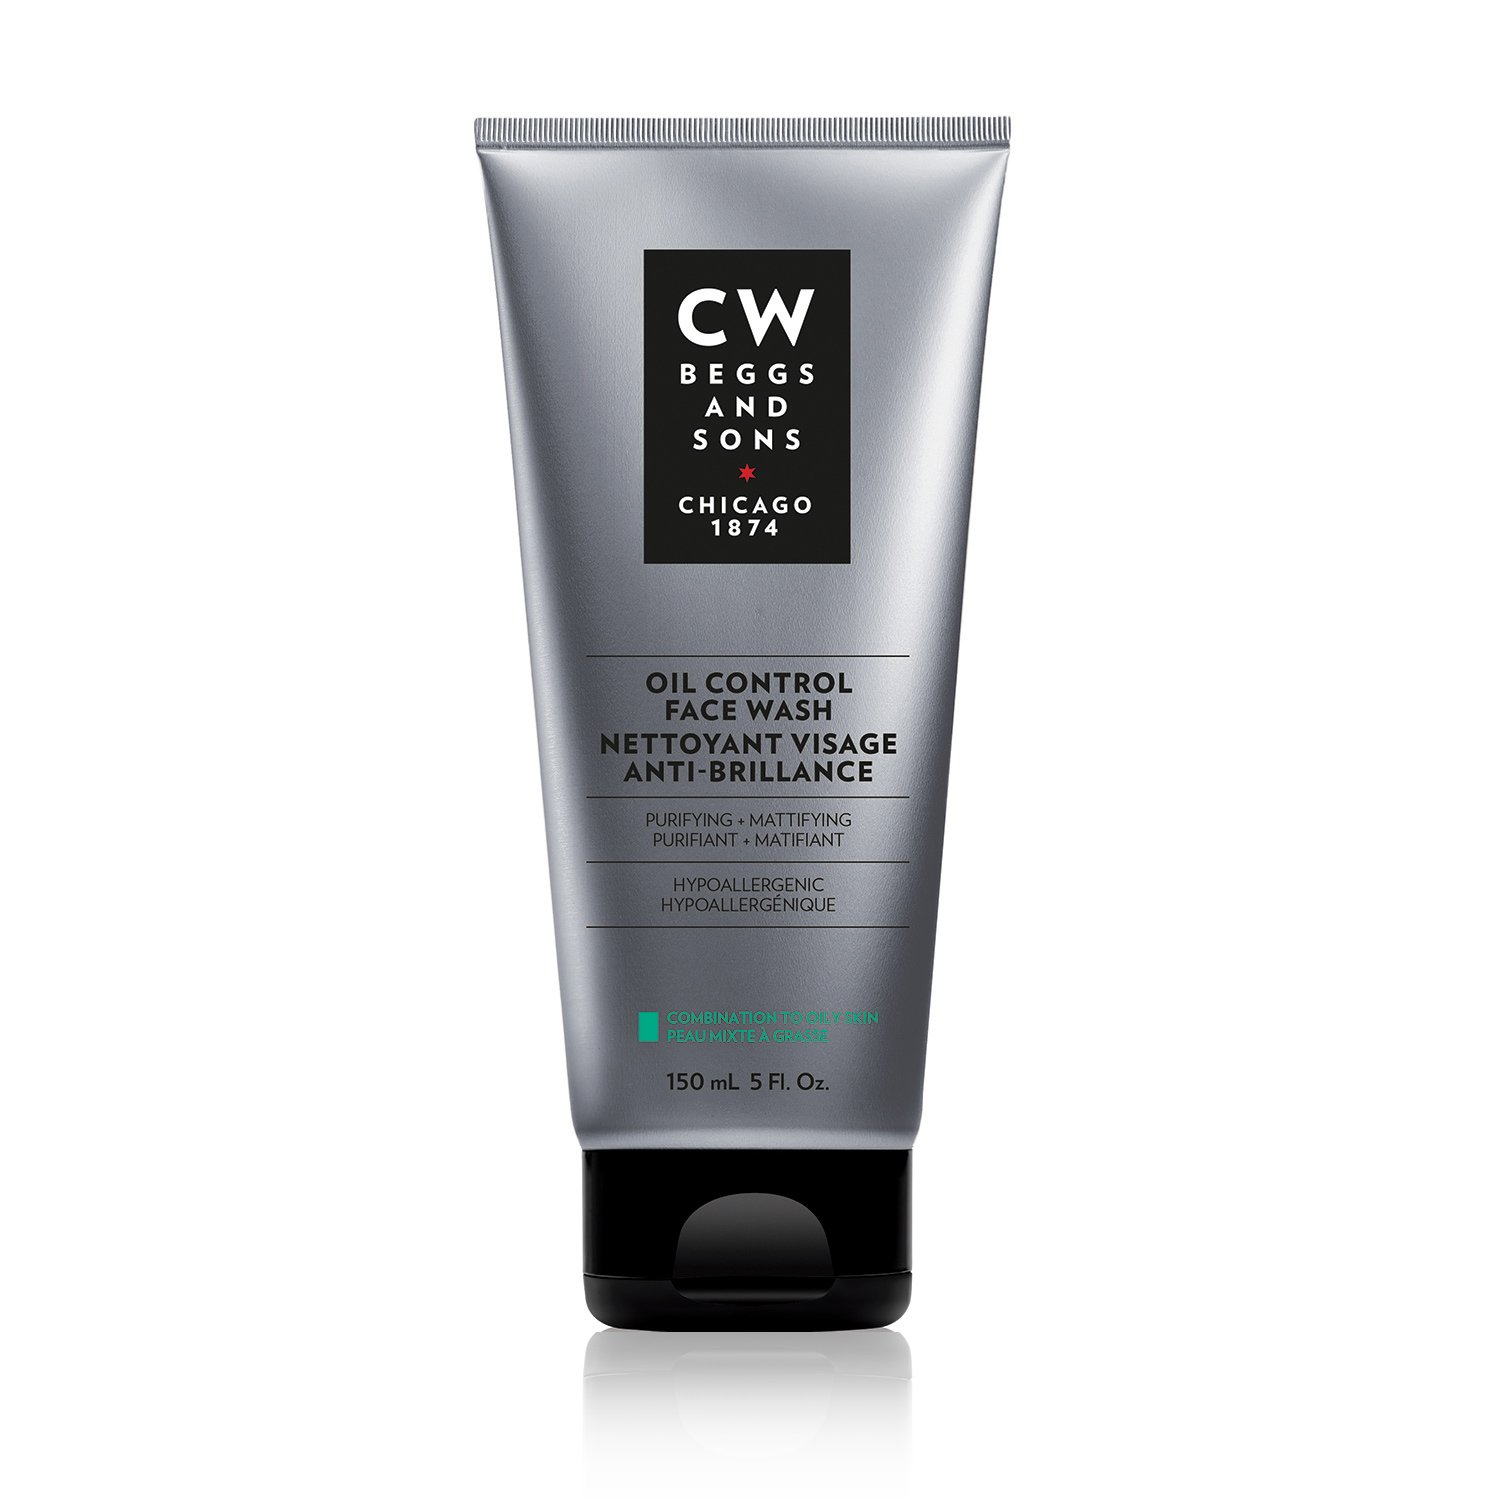 CW Beggs and Sons Oil Control Face Wash for Men, Hypoallergenic and Fragrance-Free, 150 mL Marcelle group - Beauty